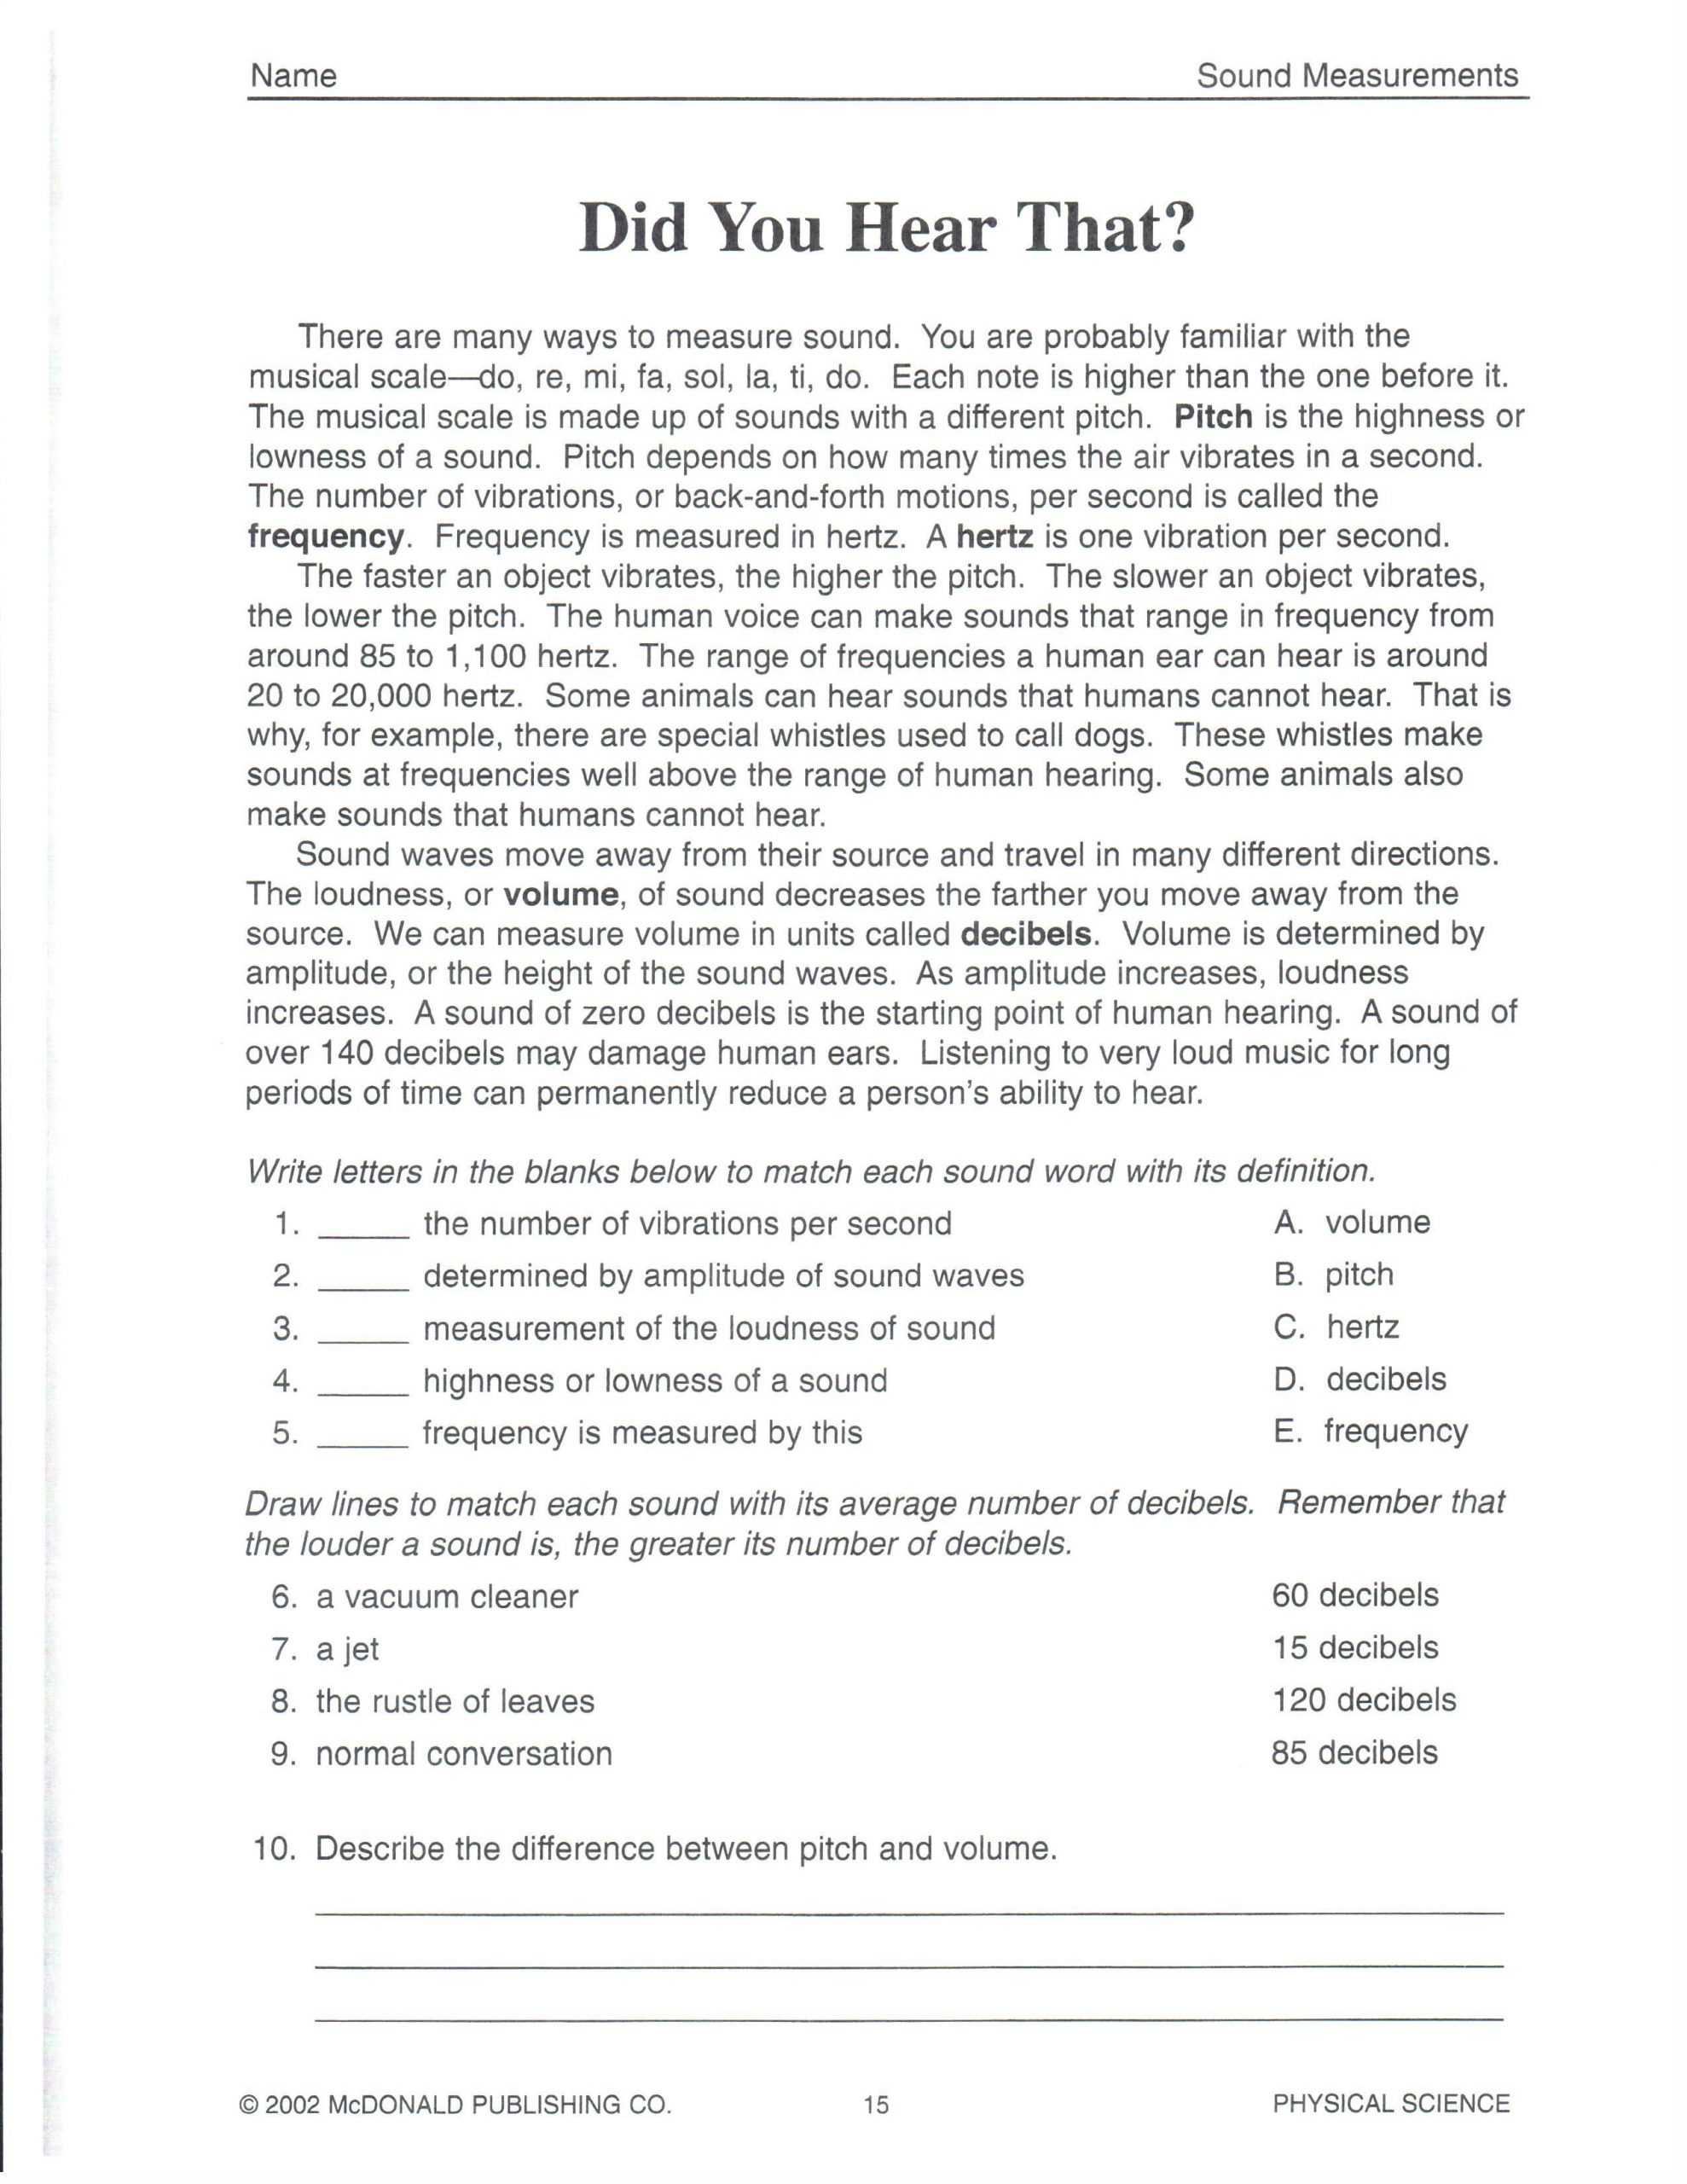 7 Grade Science Worksheets Physical Science Did You Hear that 101roxm 2 550—3 300